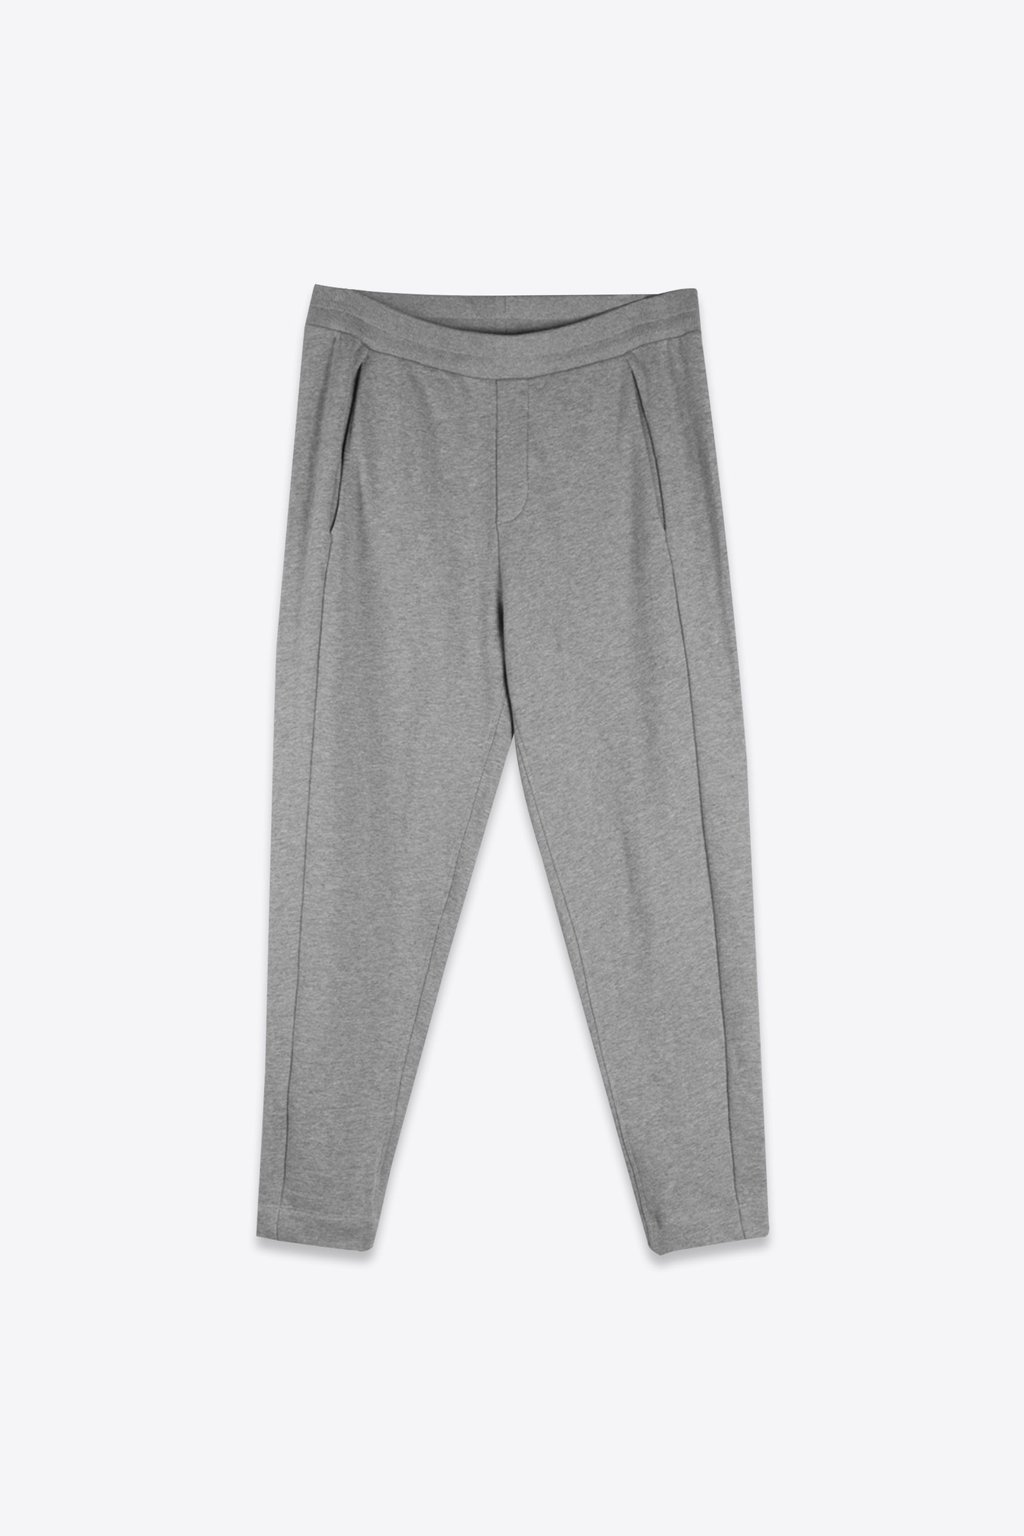 Sweatpant 1246 Gray Mix 5